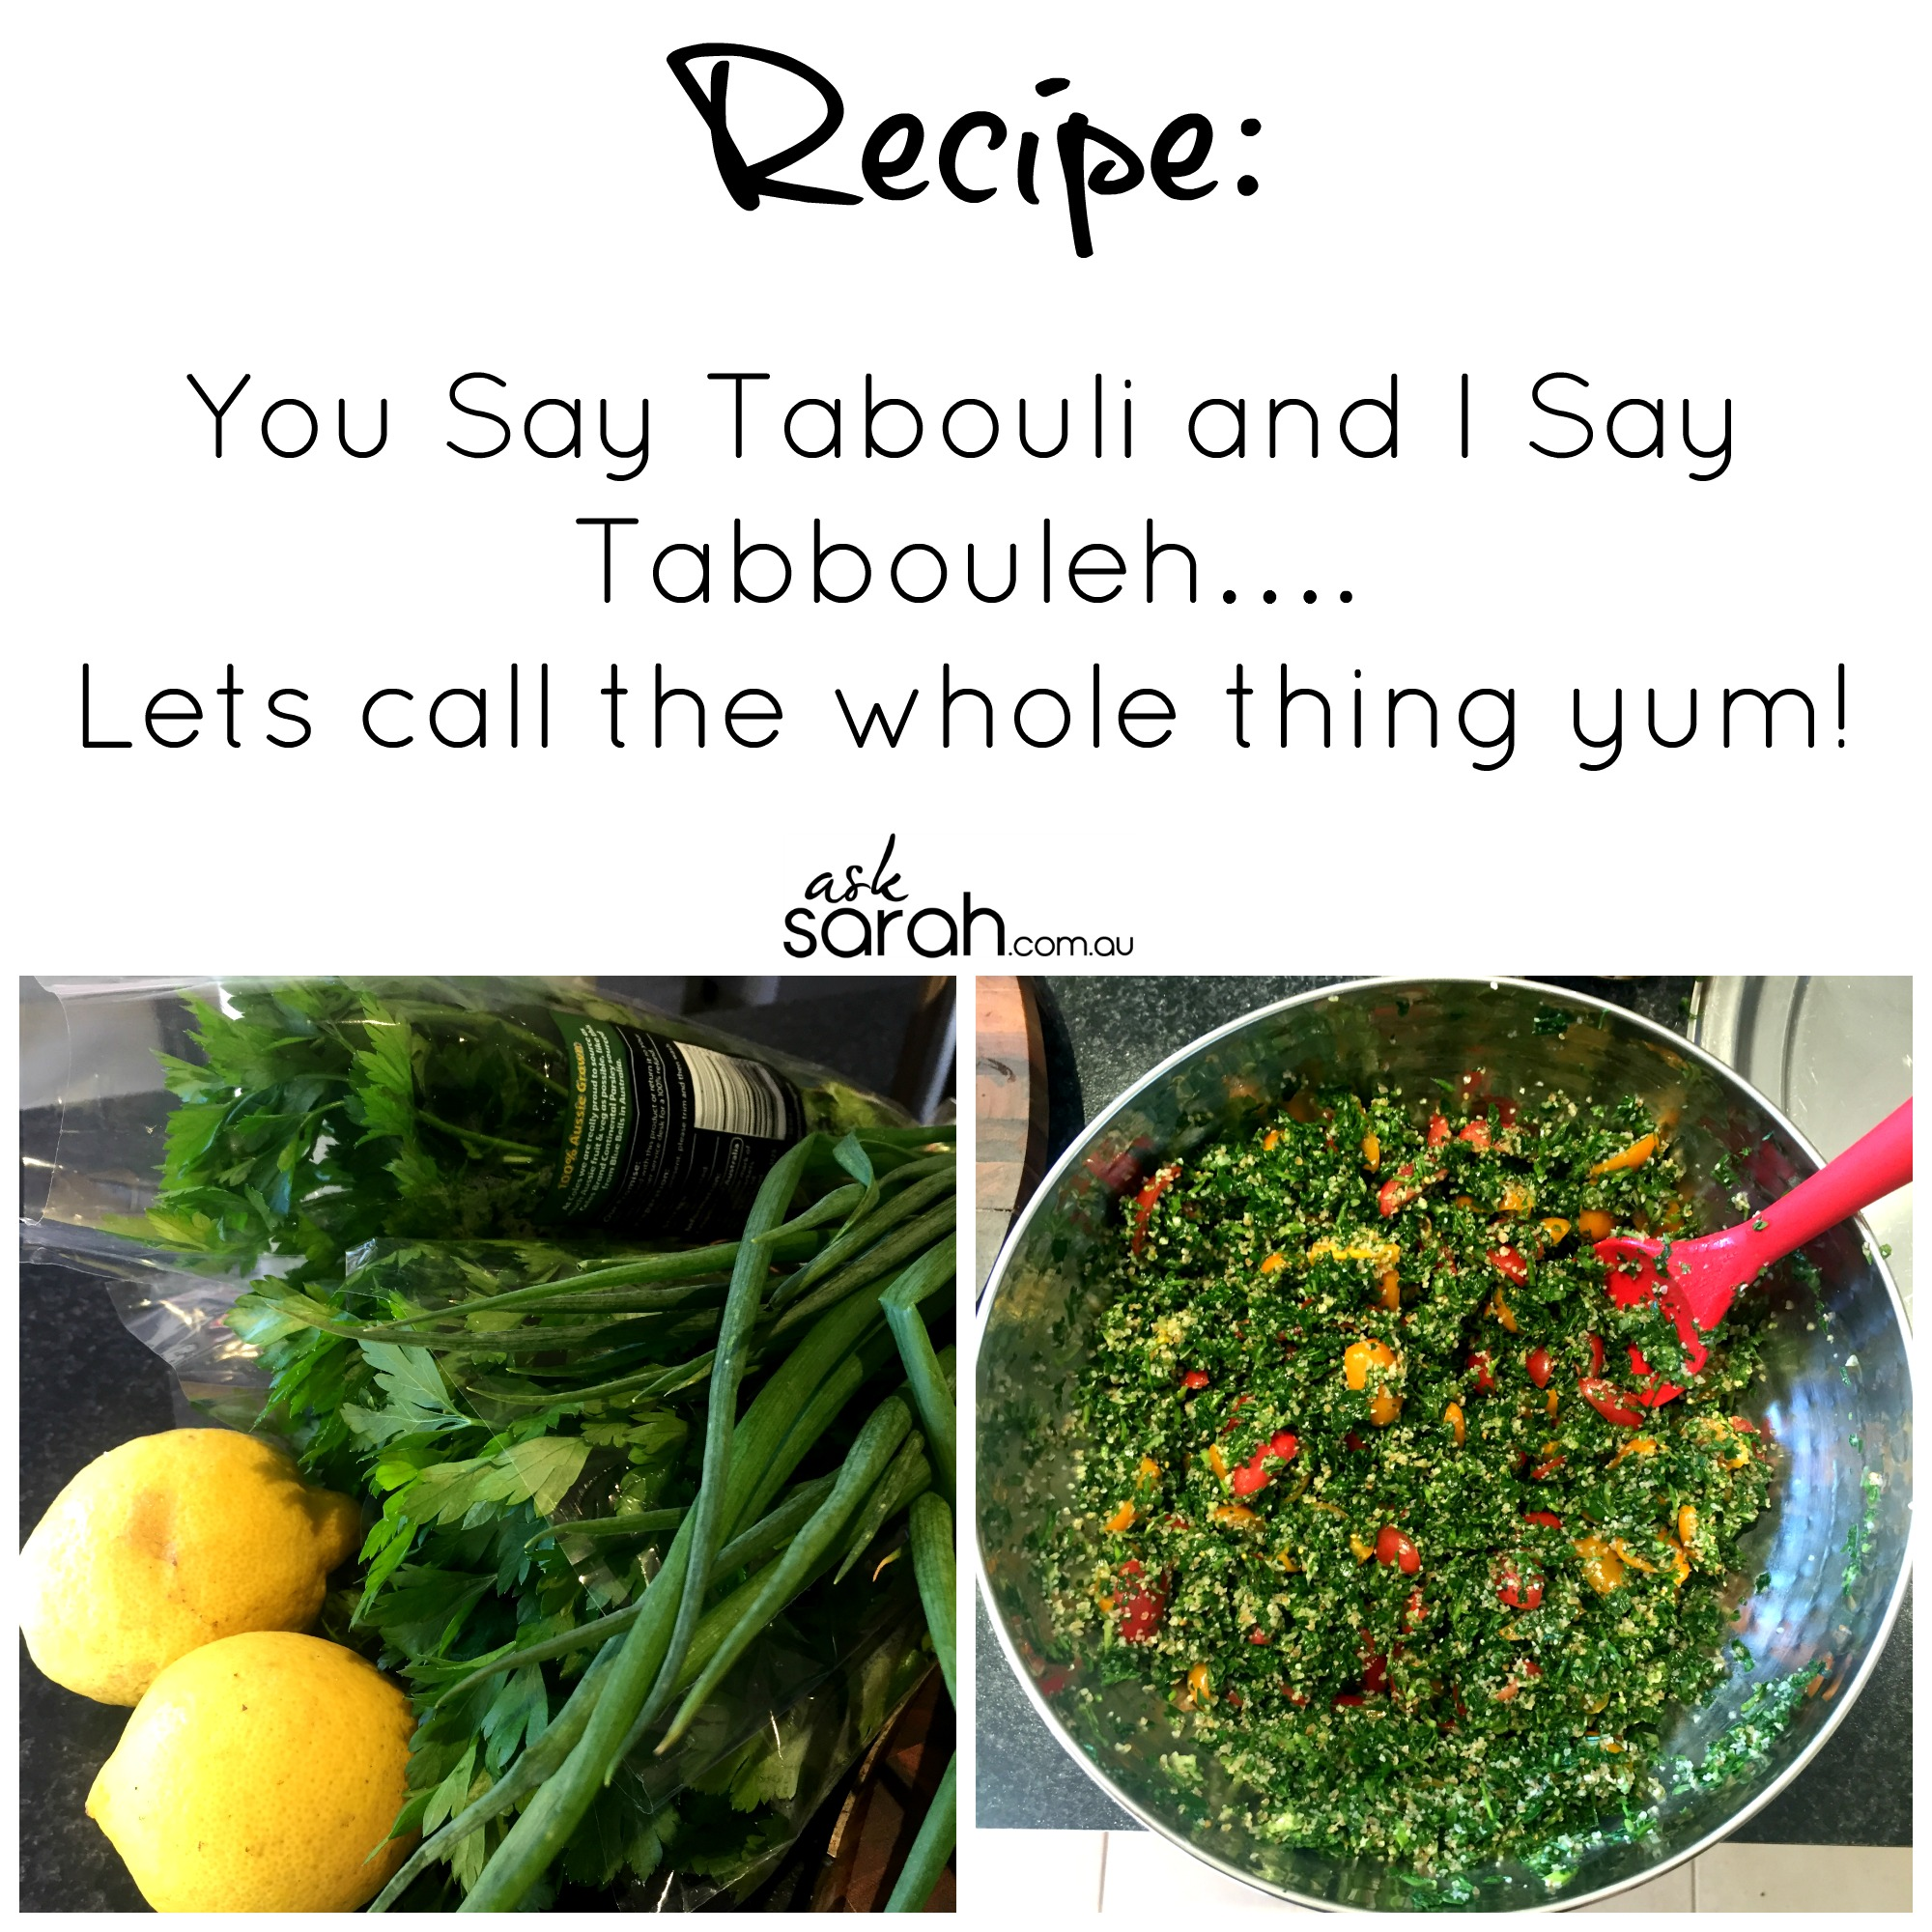 Recipe: You Say Tabouli and I Say Tabbouleh….Lets call the whole thing yum!